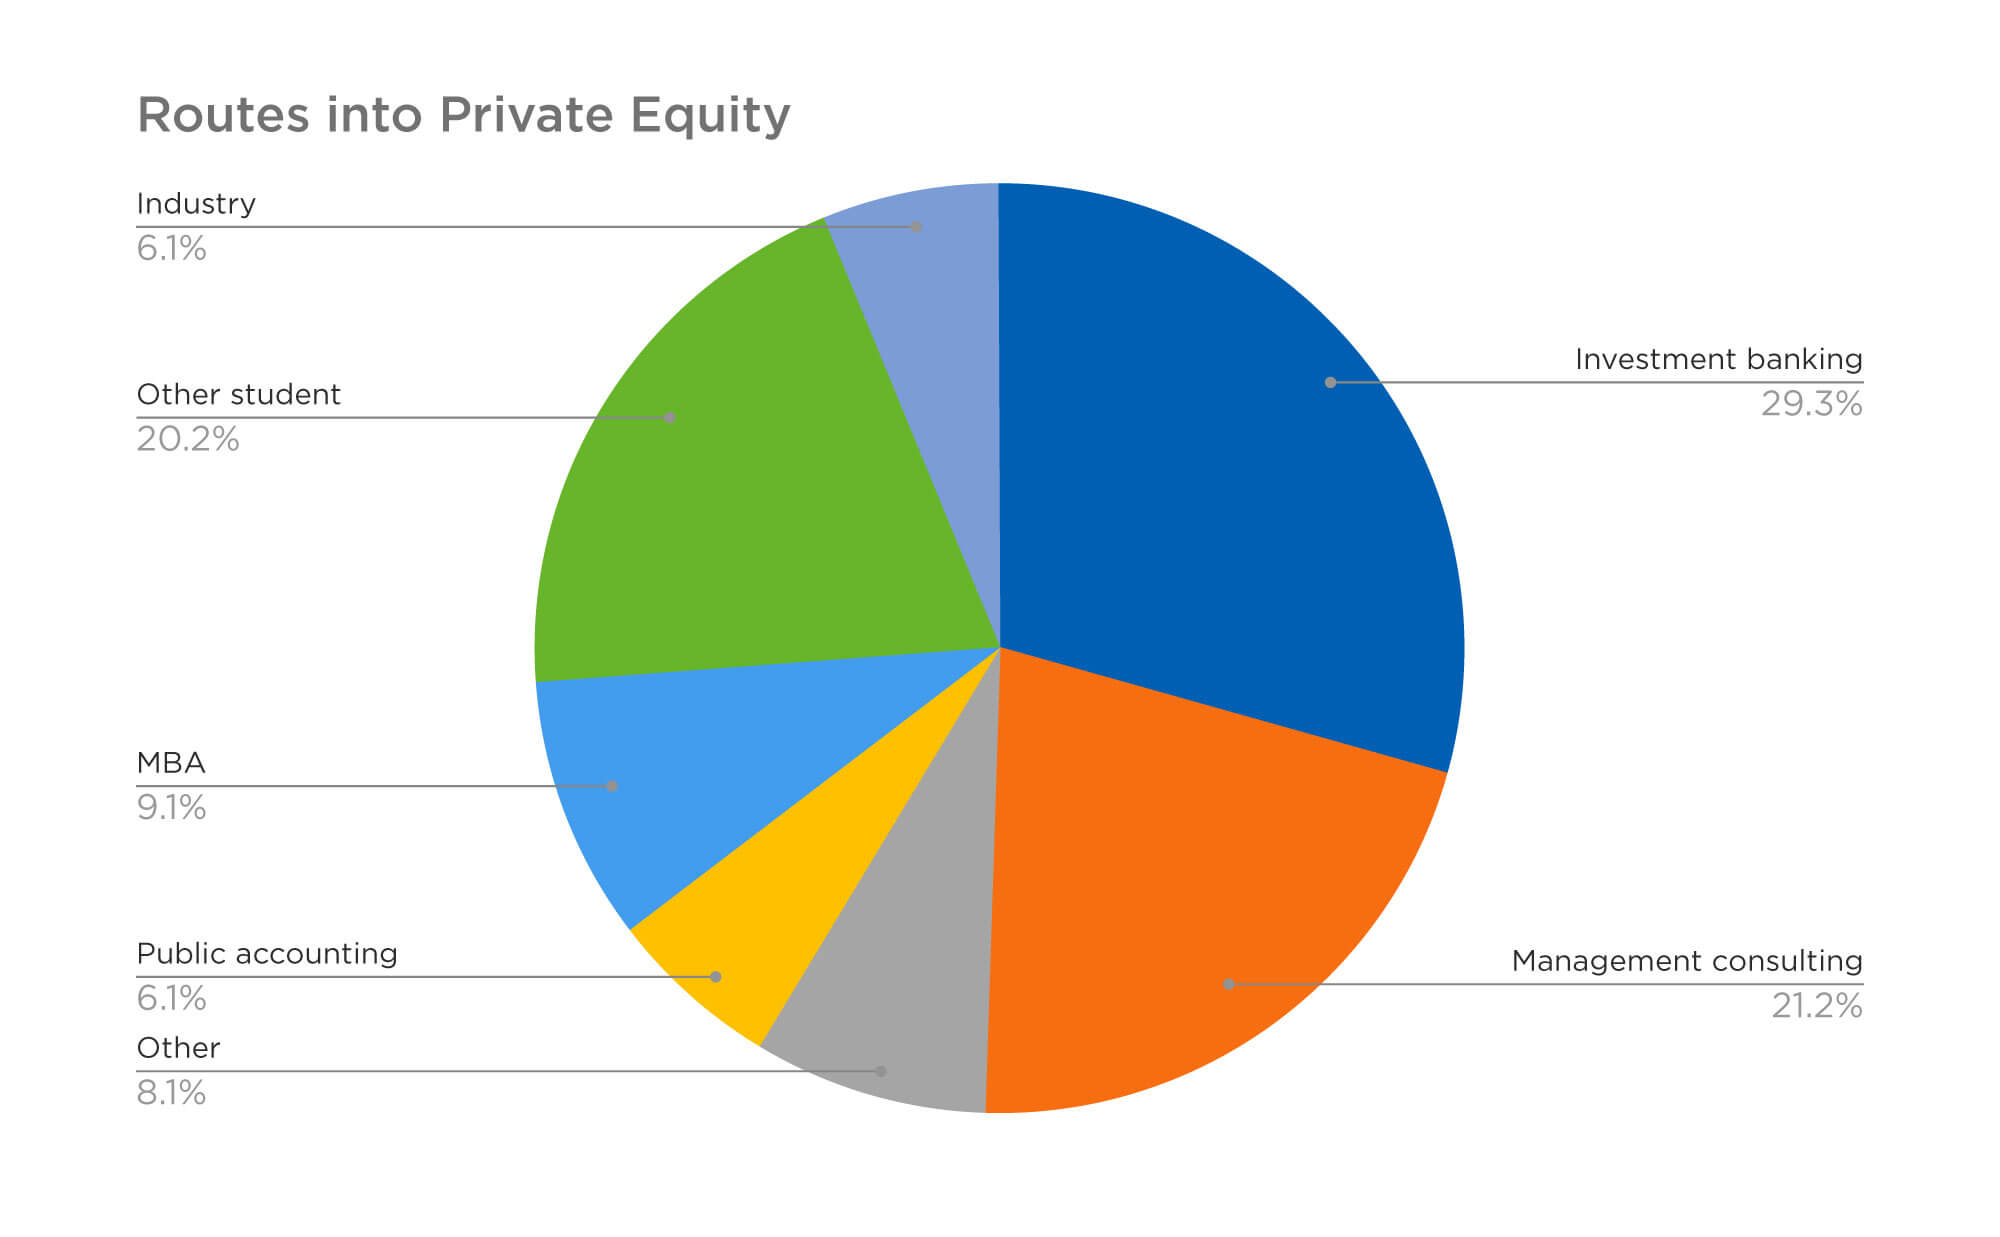 Routes into private equity